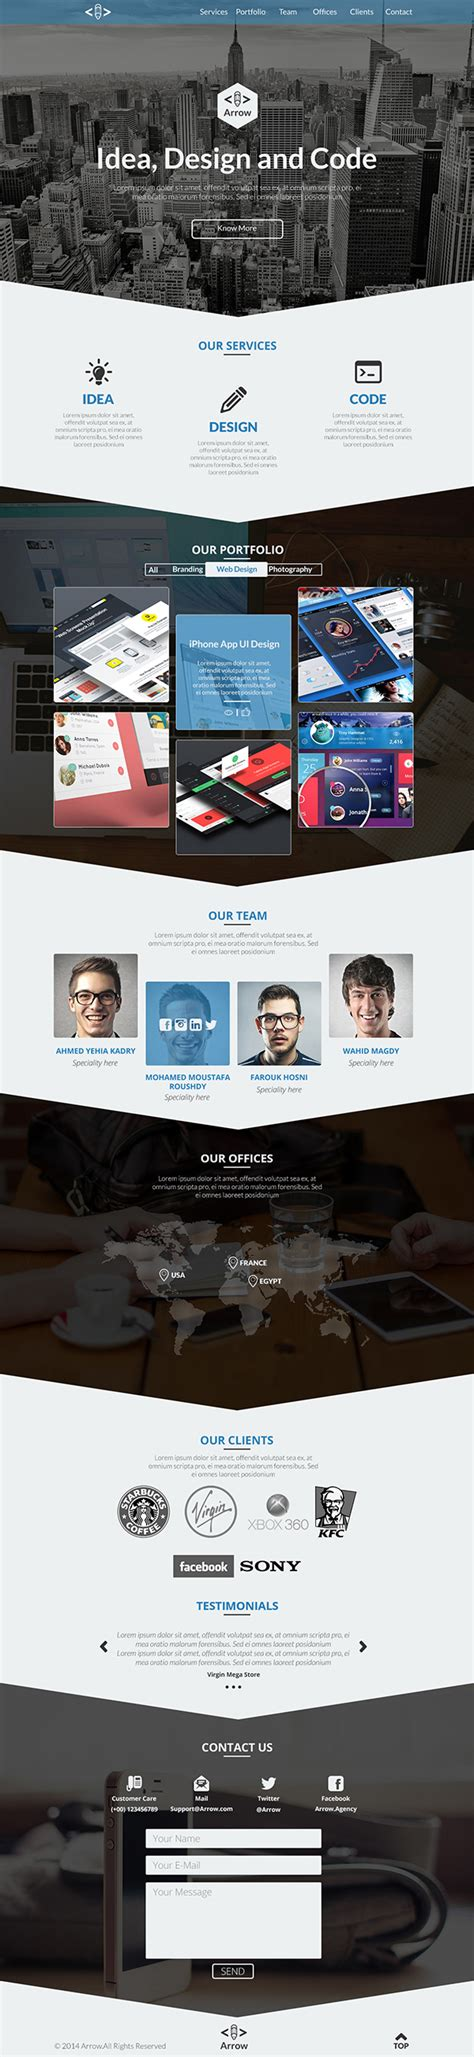 psd templates   page  web templates freebies